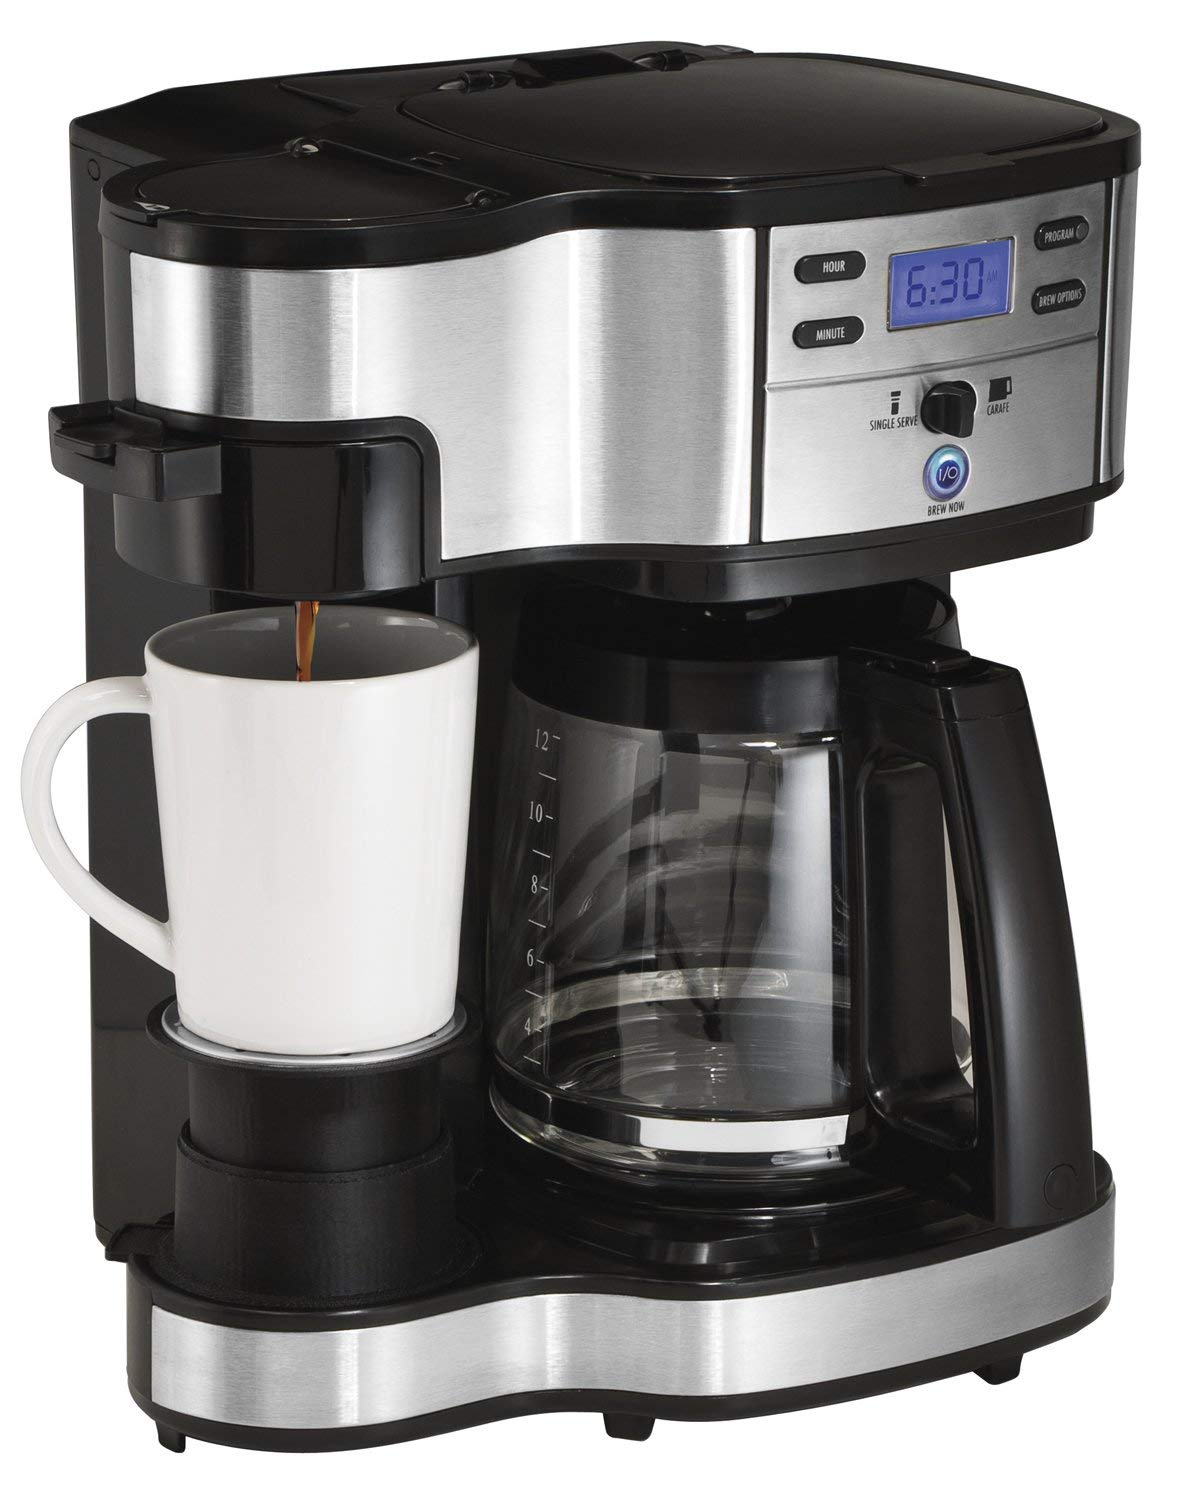 Hamilton Beach (49980A) Single Serve Coffee Maker and Coffee Pot Maker, Programmable, Black/Stainless Steel (Renewed) by Hamilton Beach (Image #6)